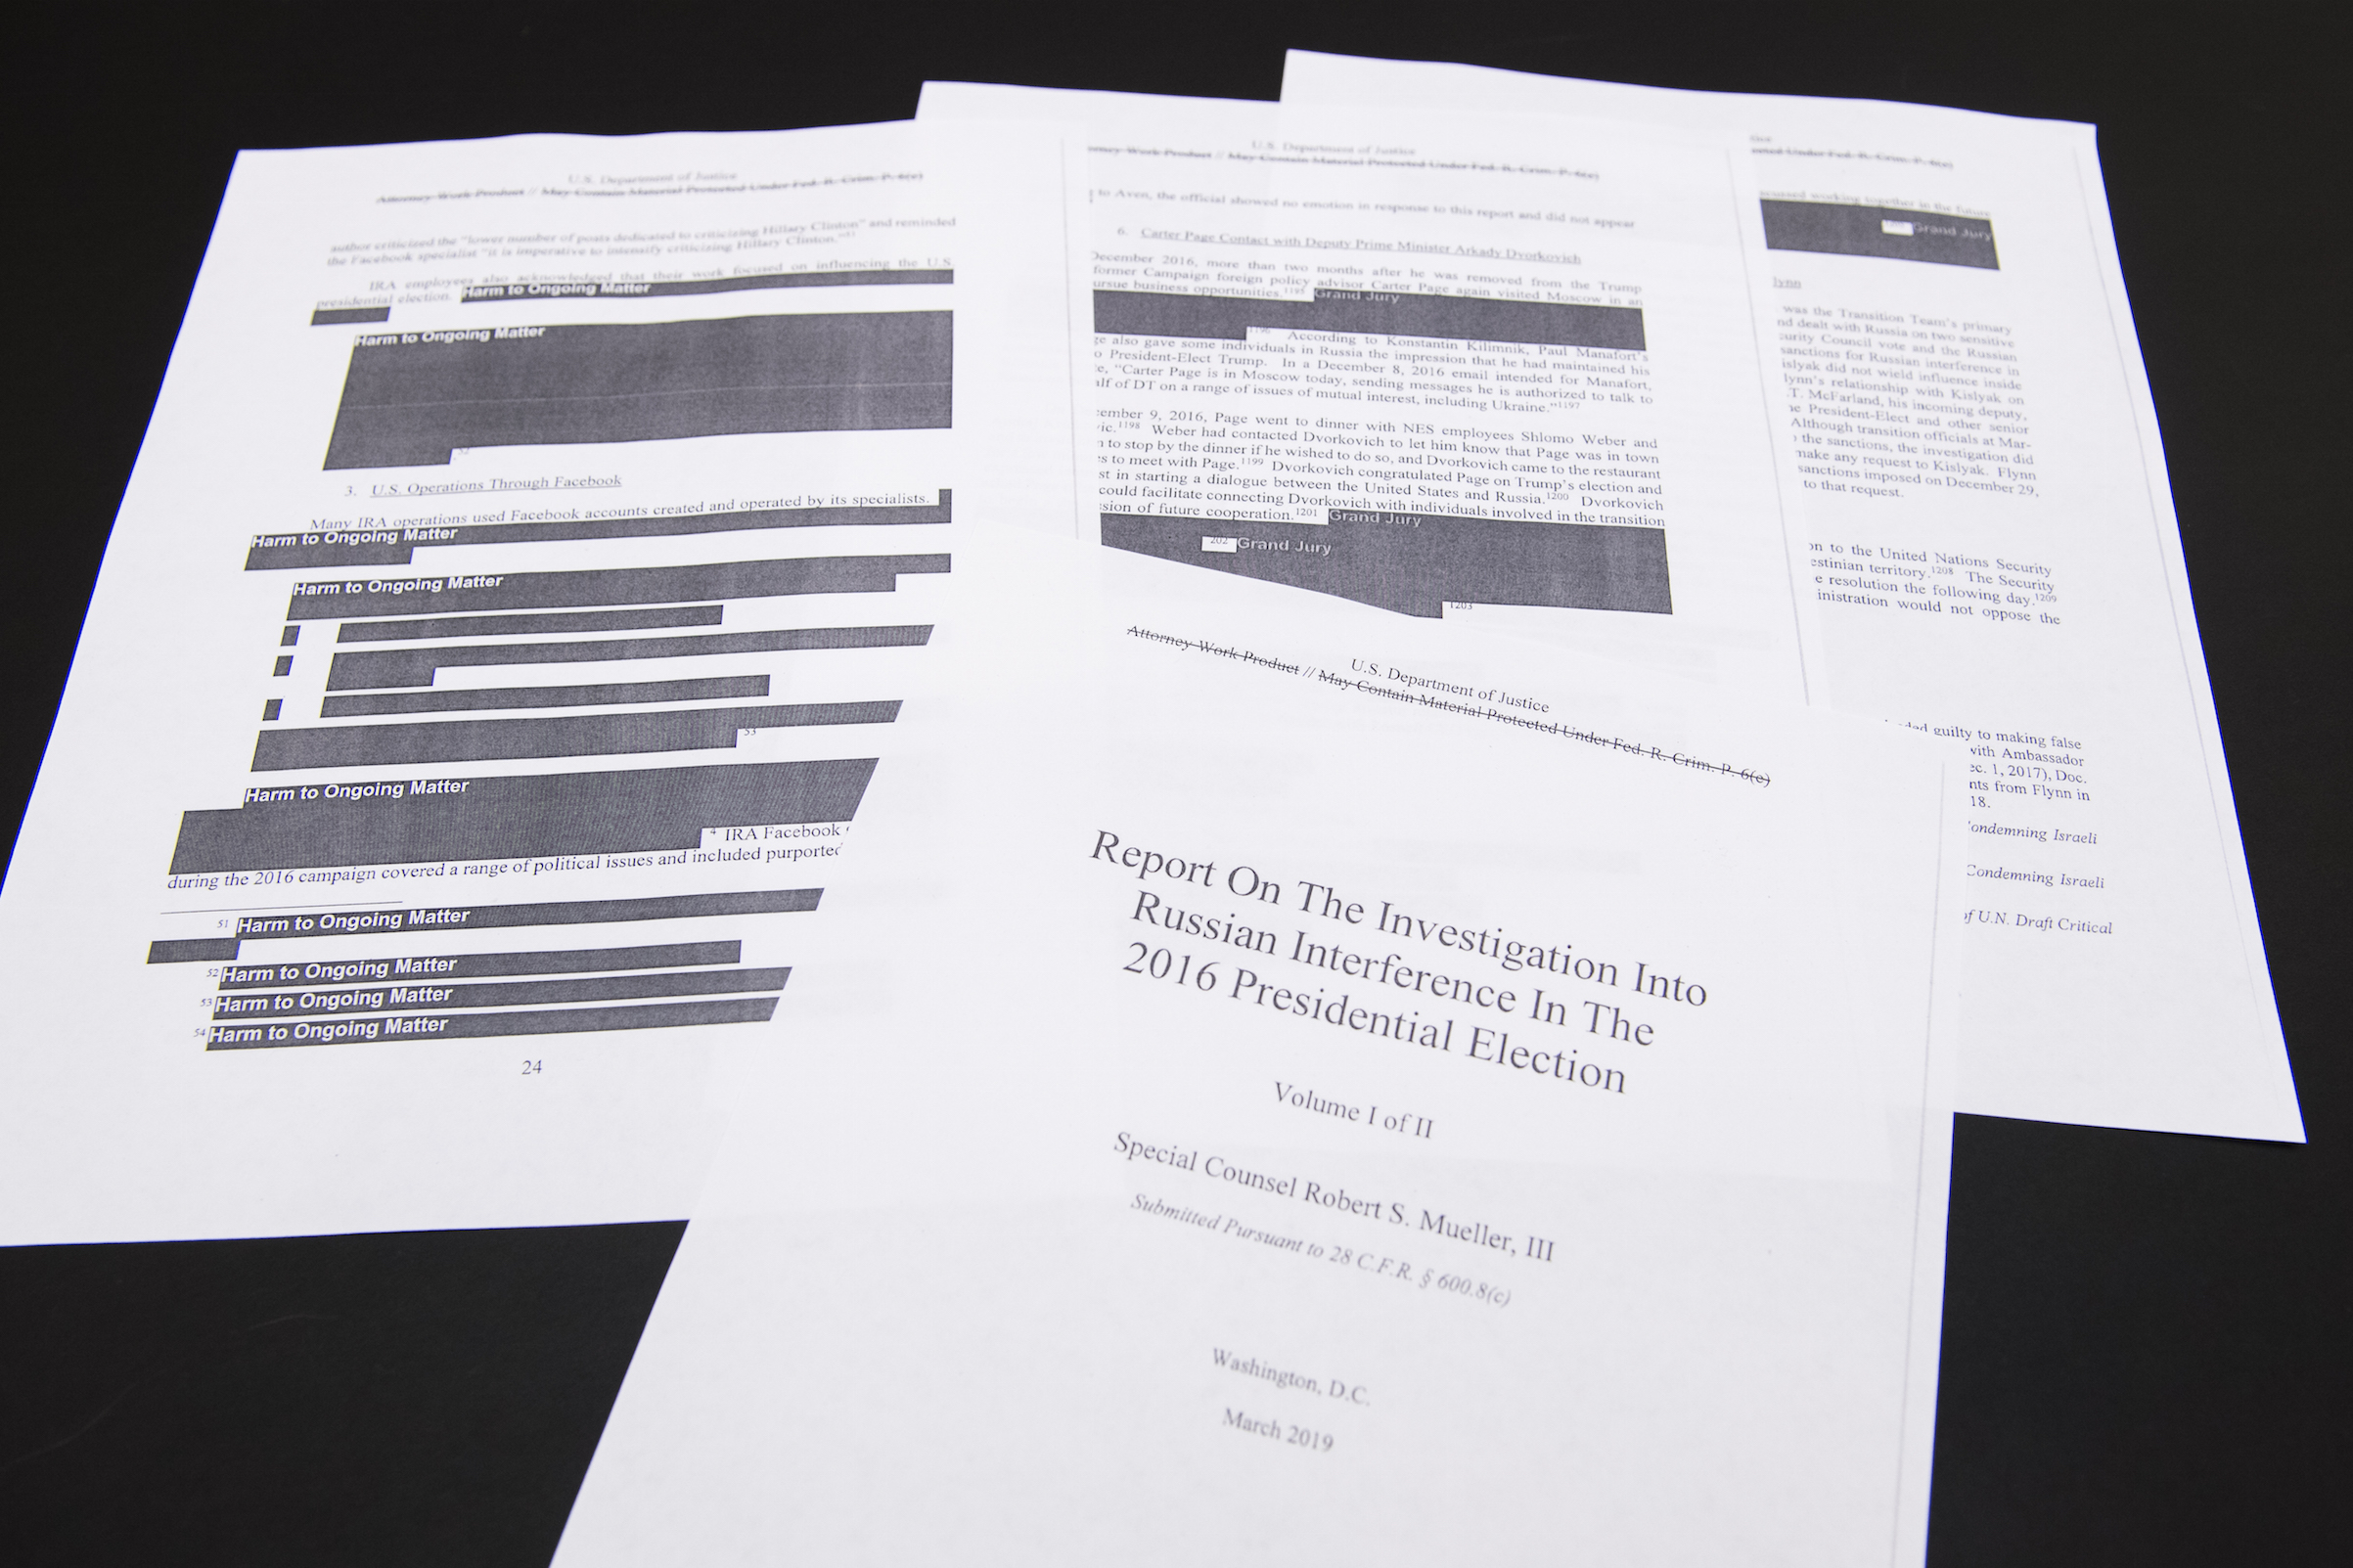 A few pages of special counsel Robert Mueller's report on Russian interference in the 2016 election, which was printed out by staff in the House Judiciary Committee's hearing room on April 18, 2019.